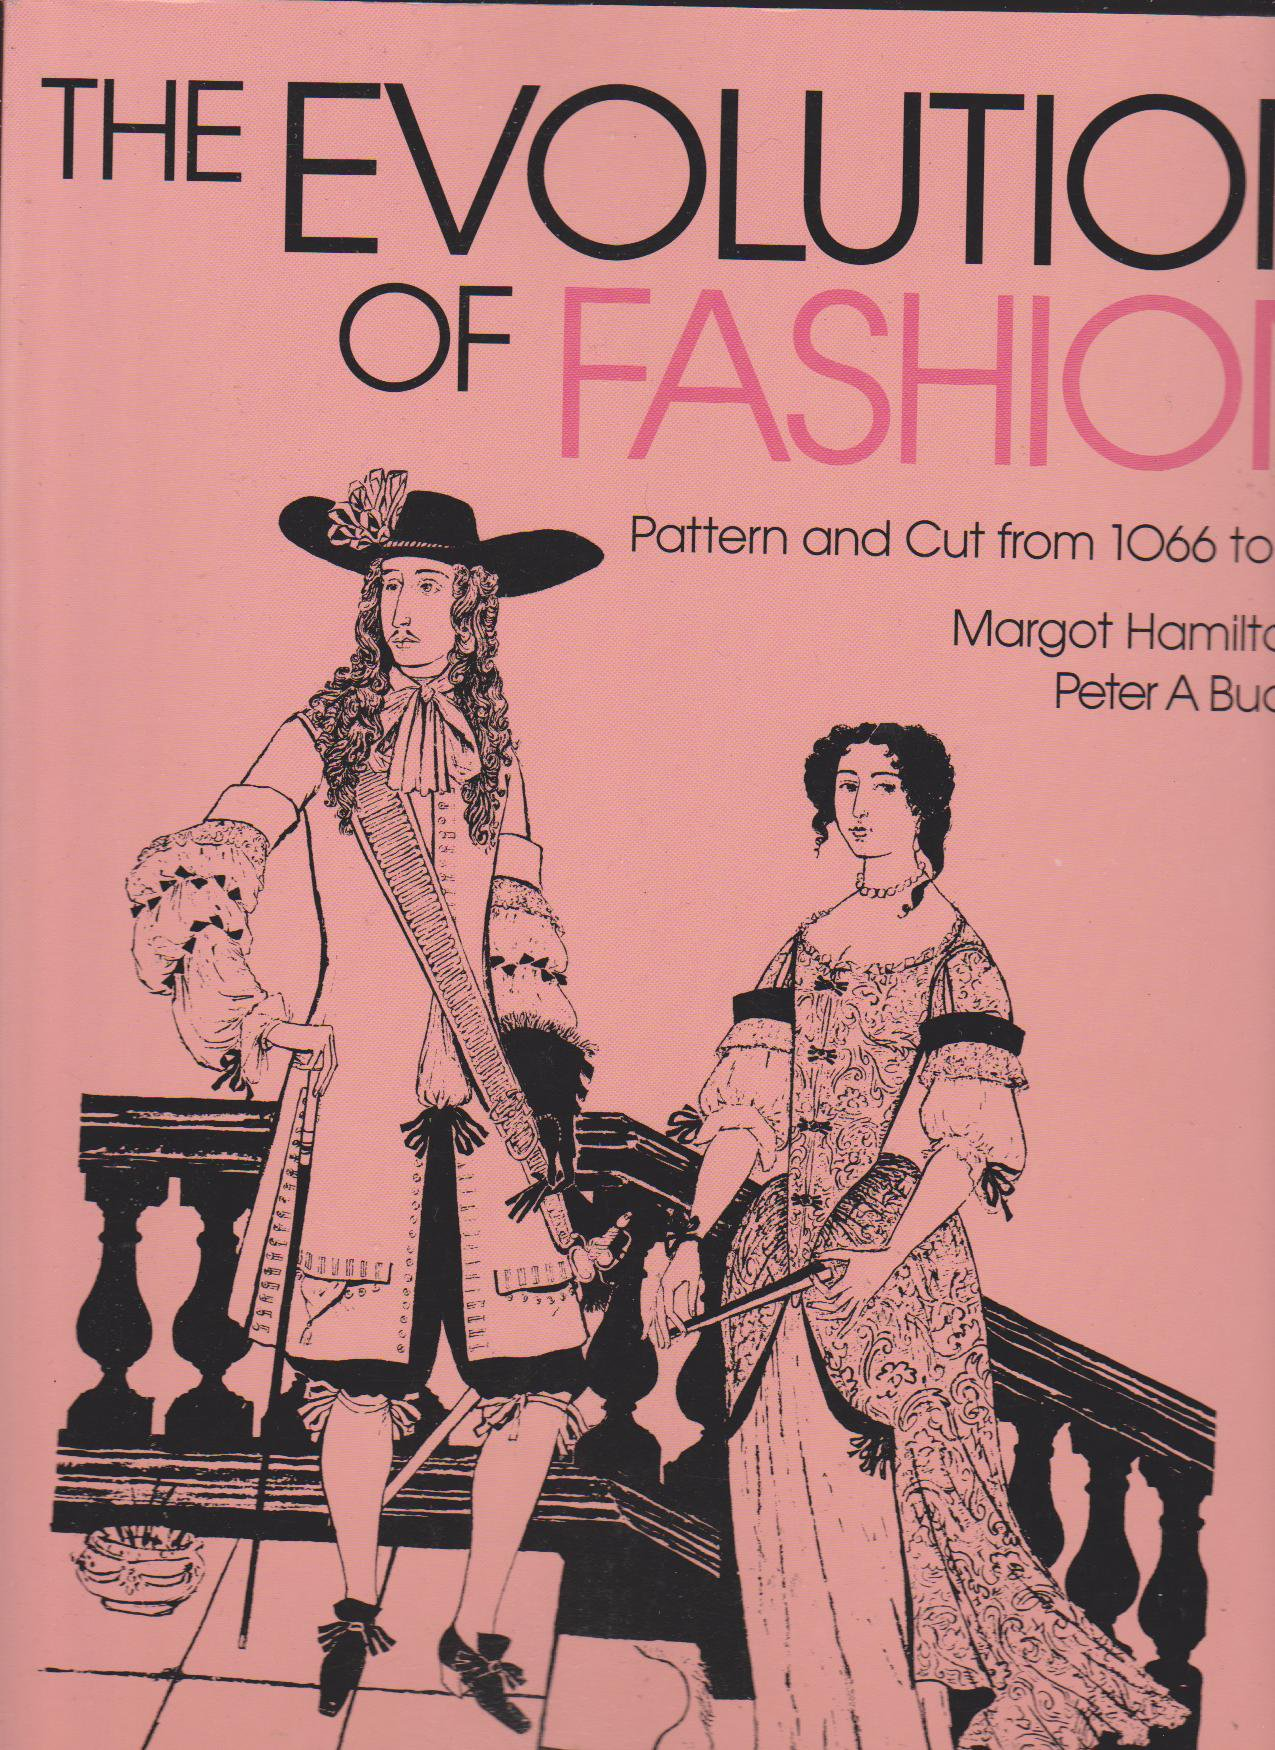 Evolution of Fashion - Hill and Bucknell - HandBound Costumes Bibliography - Historical Costume Research - Georgian Cavendish Duchess of Devonshire - Marie Antionette - Mdm Pompadour - Georgian Costume - Images of Clothing through the ages - Patterns for historical fashion